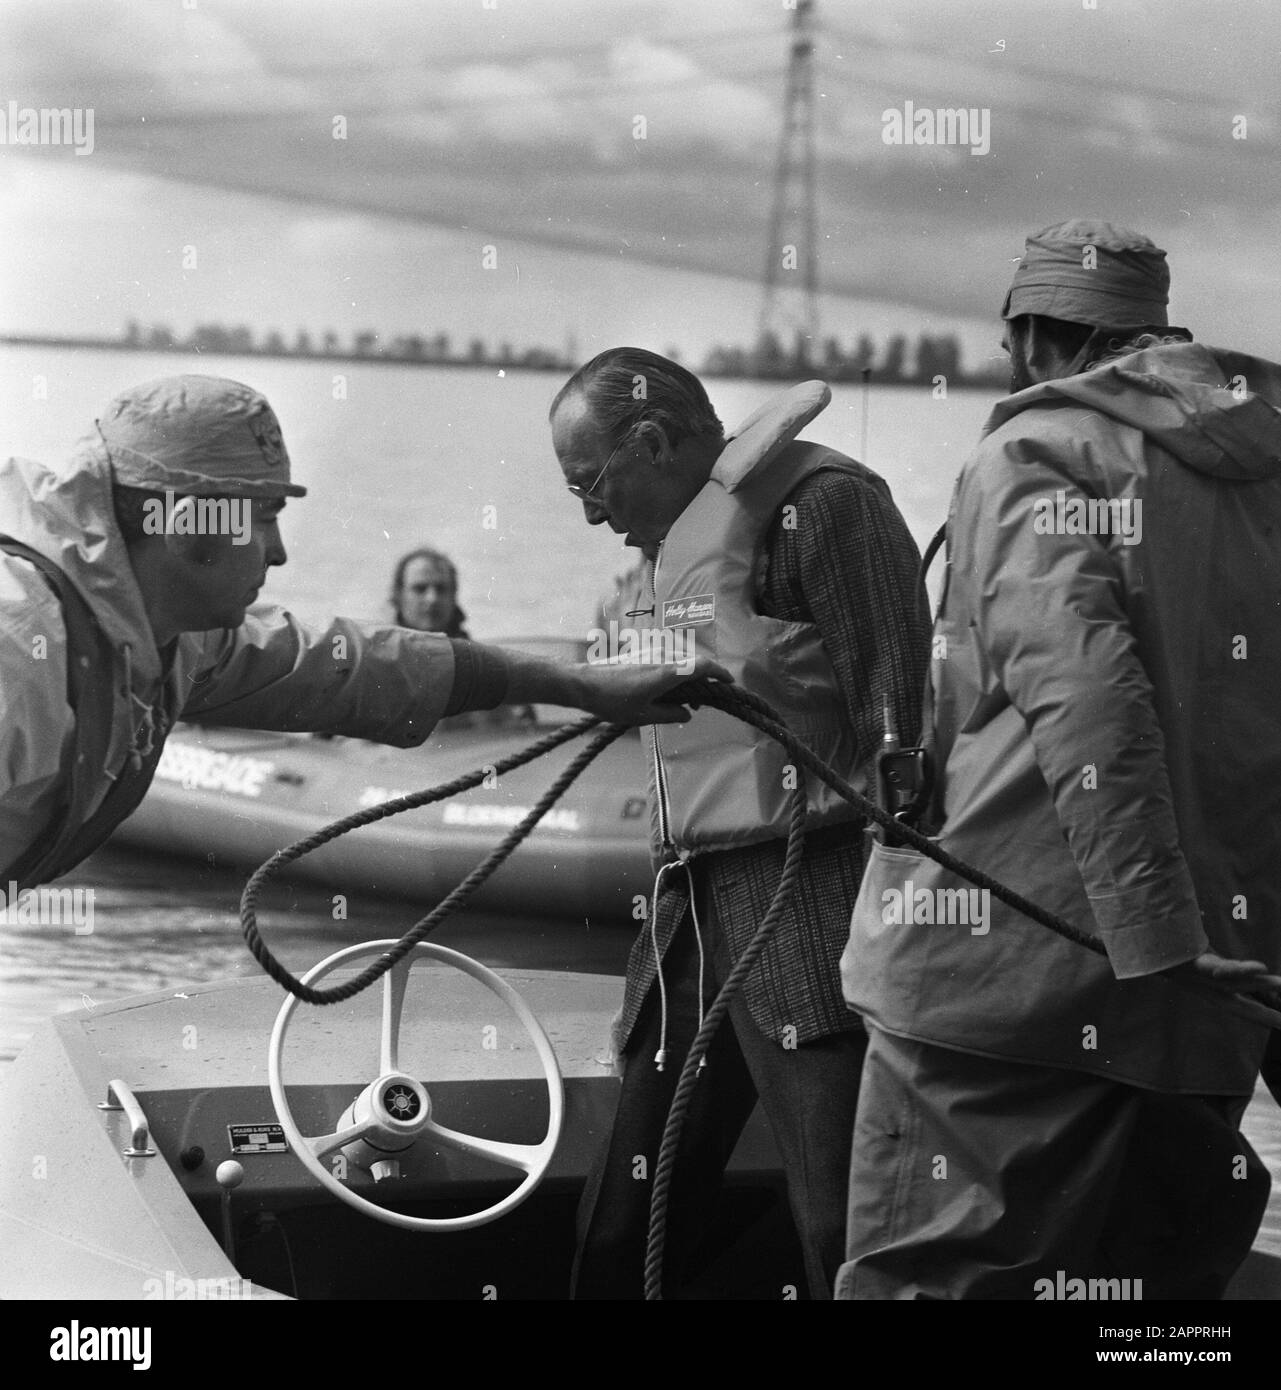 Prince Bernhard at rescue action by KNBRD on Veluwemeer Prince Bernhard hard hard in fast lifeboat on the way to the affected area Date: May 14, 1977 Location: Veluwemeer Keywords: princes Personal name: Bernhard, prince Stock Photo